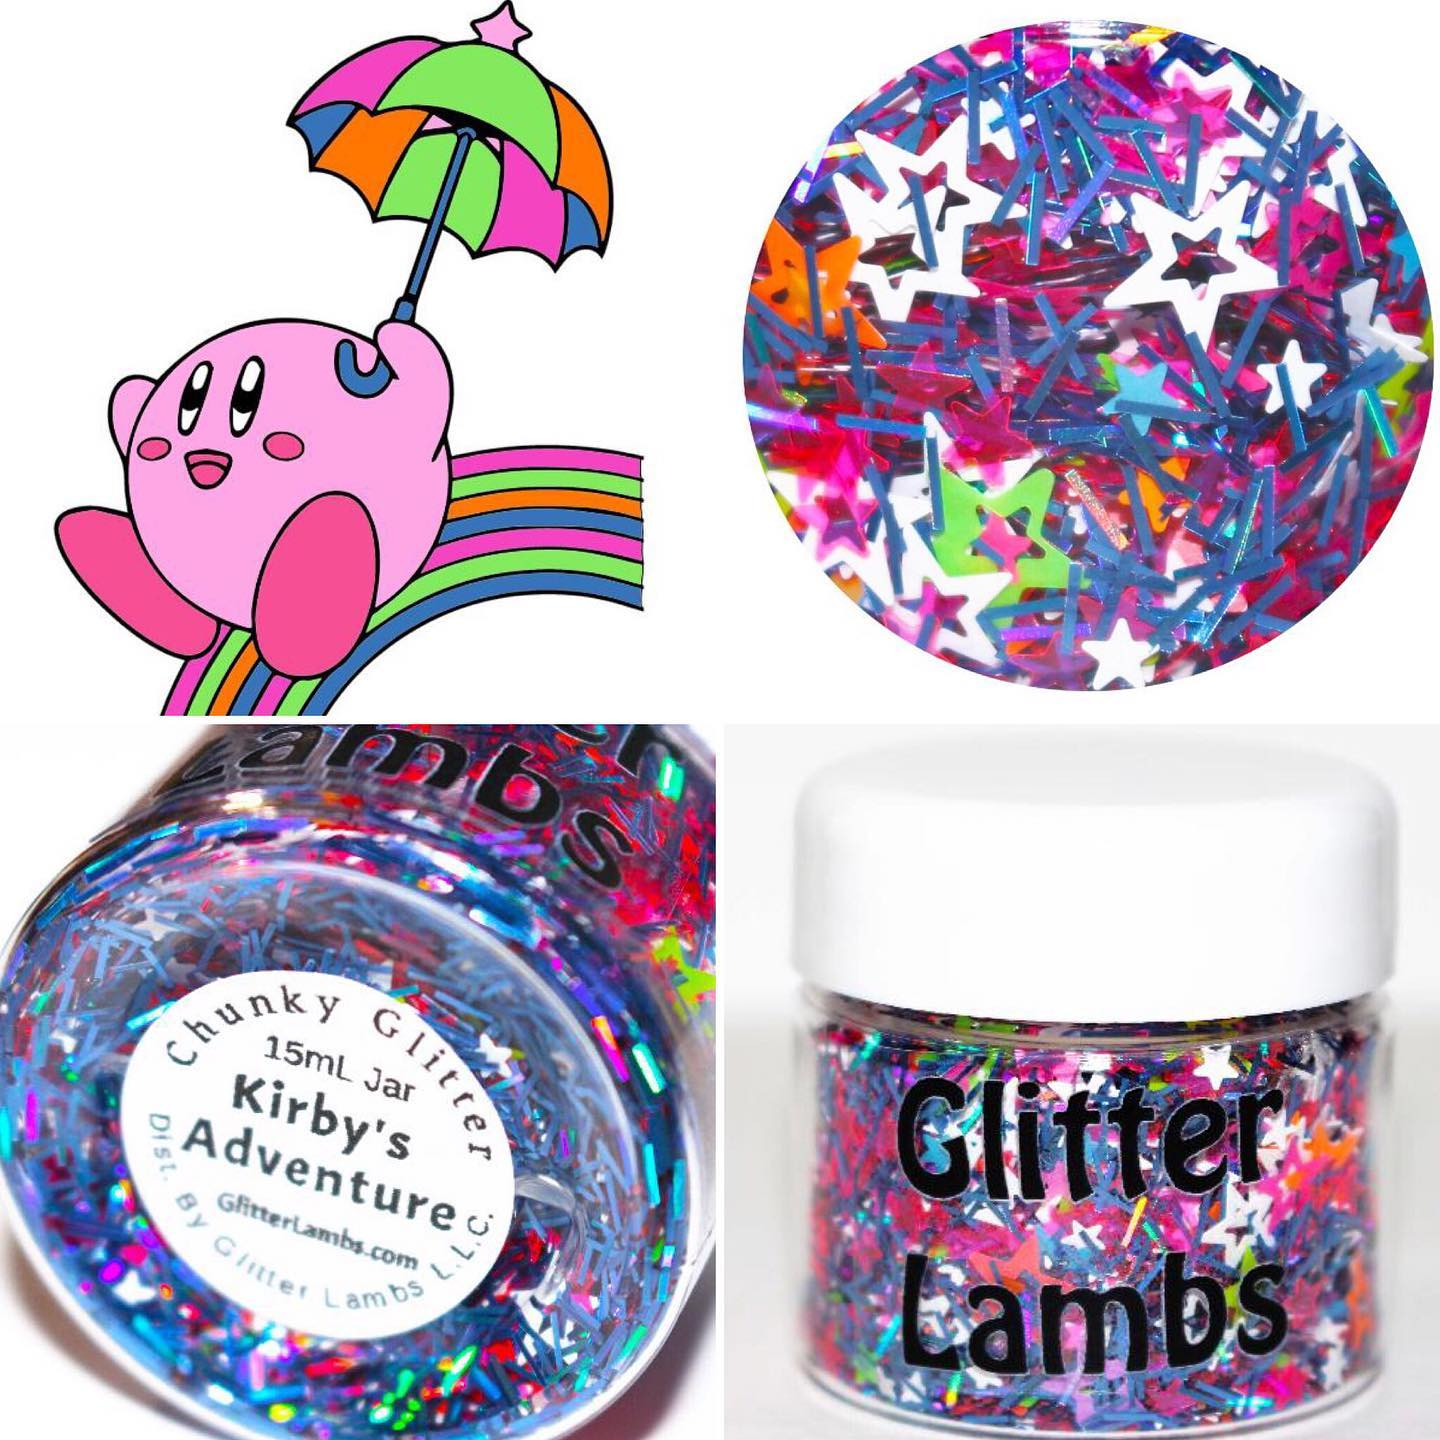 Kirby's Adventure Glitter by GlitterLambs.com